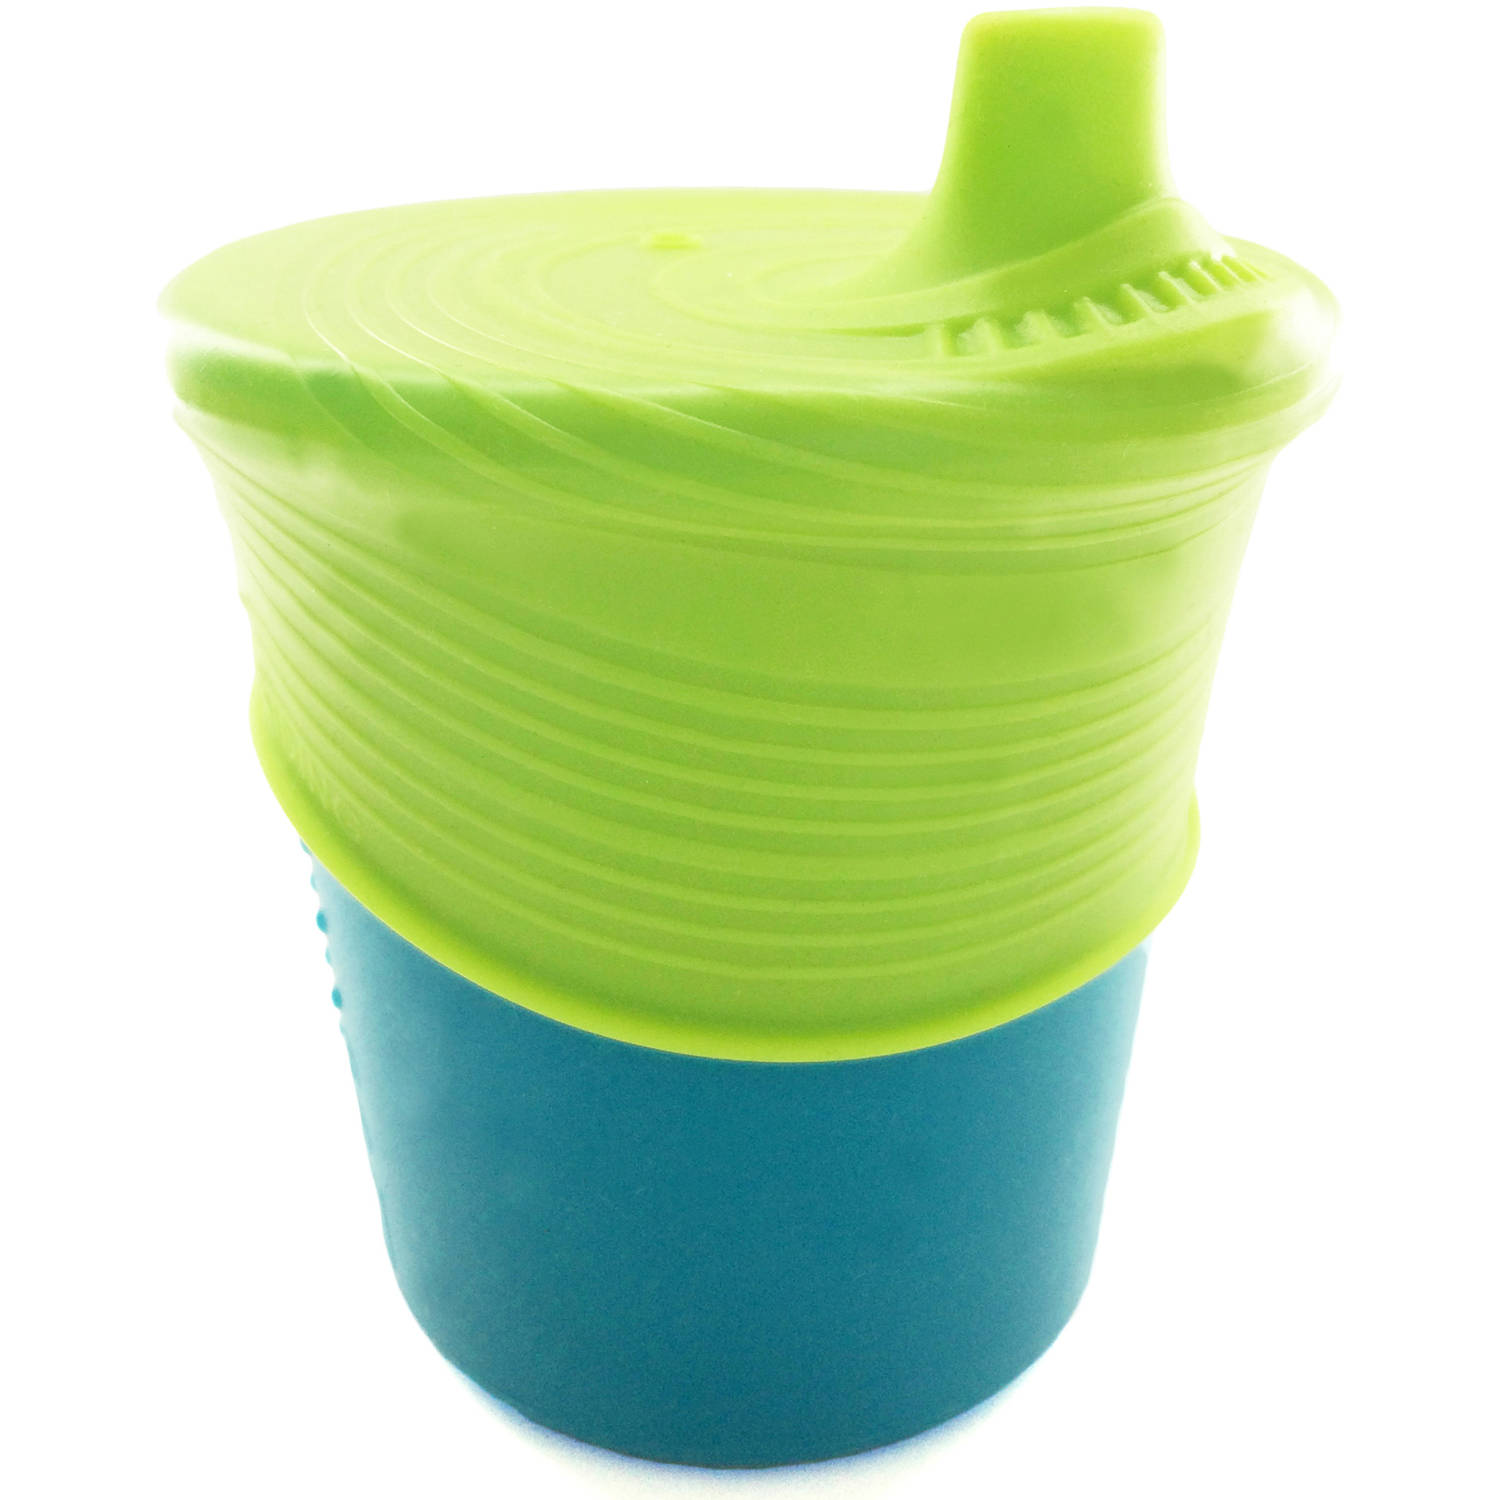 Siliskin Soft Spout Sippy Cup - Silicone